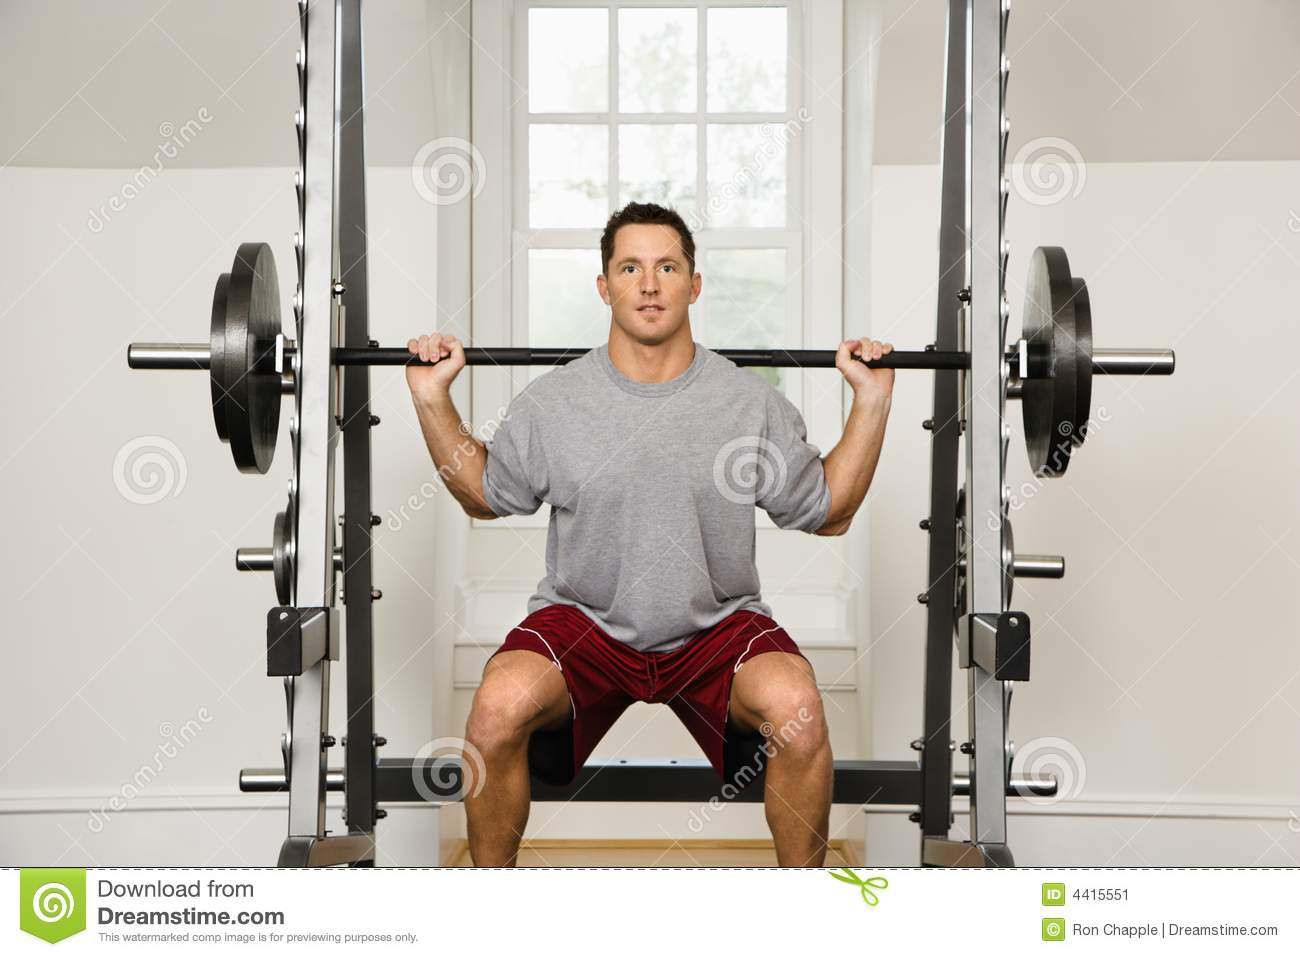 Man Lifting Weights Stock Image - Image: 4415551